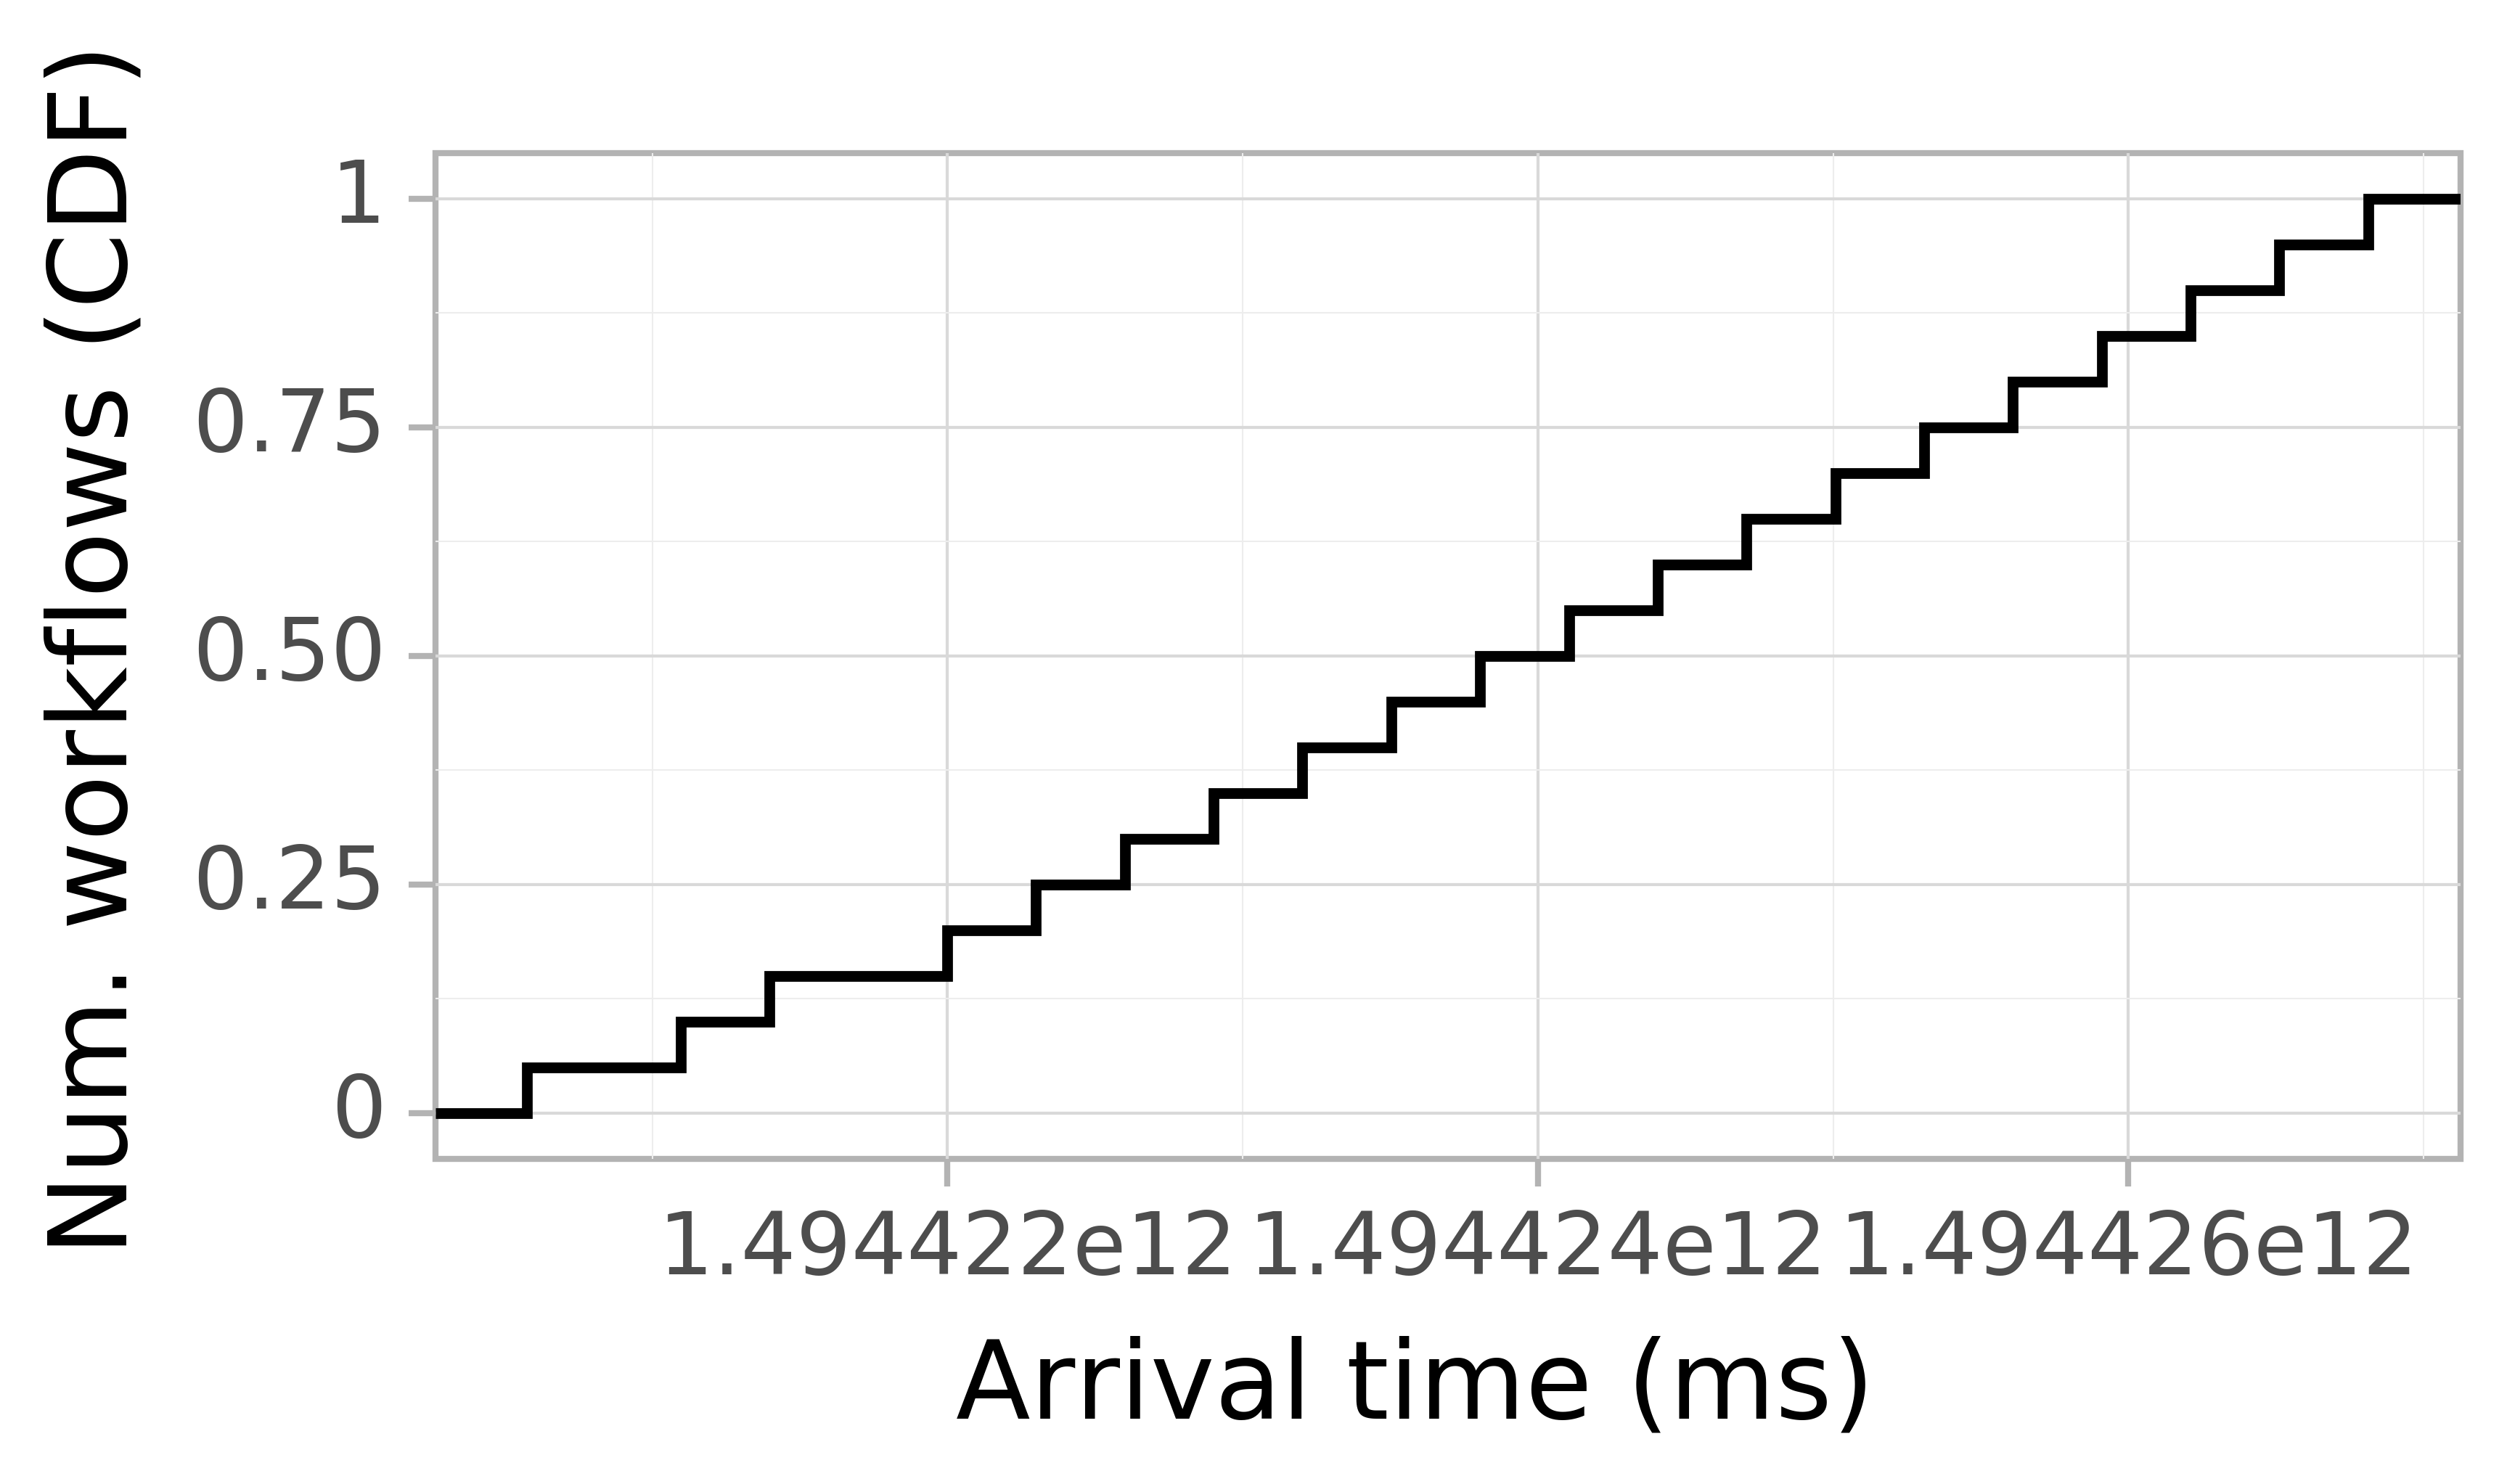 Job arrival CDF graph for the askalon-new_ee44 trace.